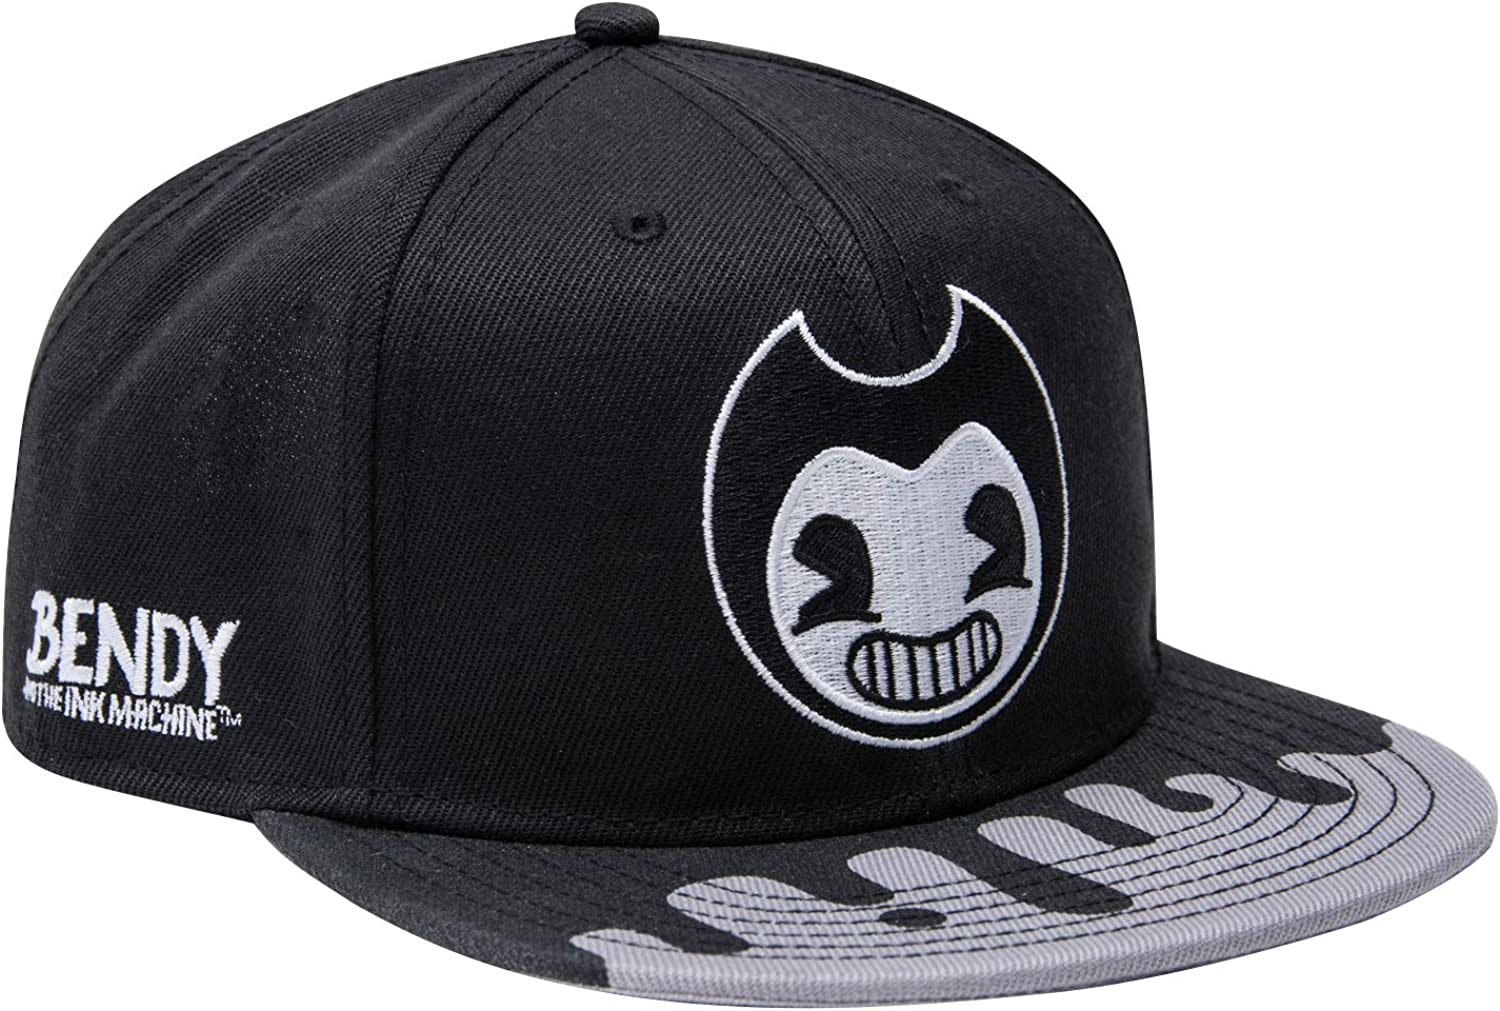 Bendy and the Ink Machine Hat - Black and White Bendy Hat - Bendy Snapback Hats